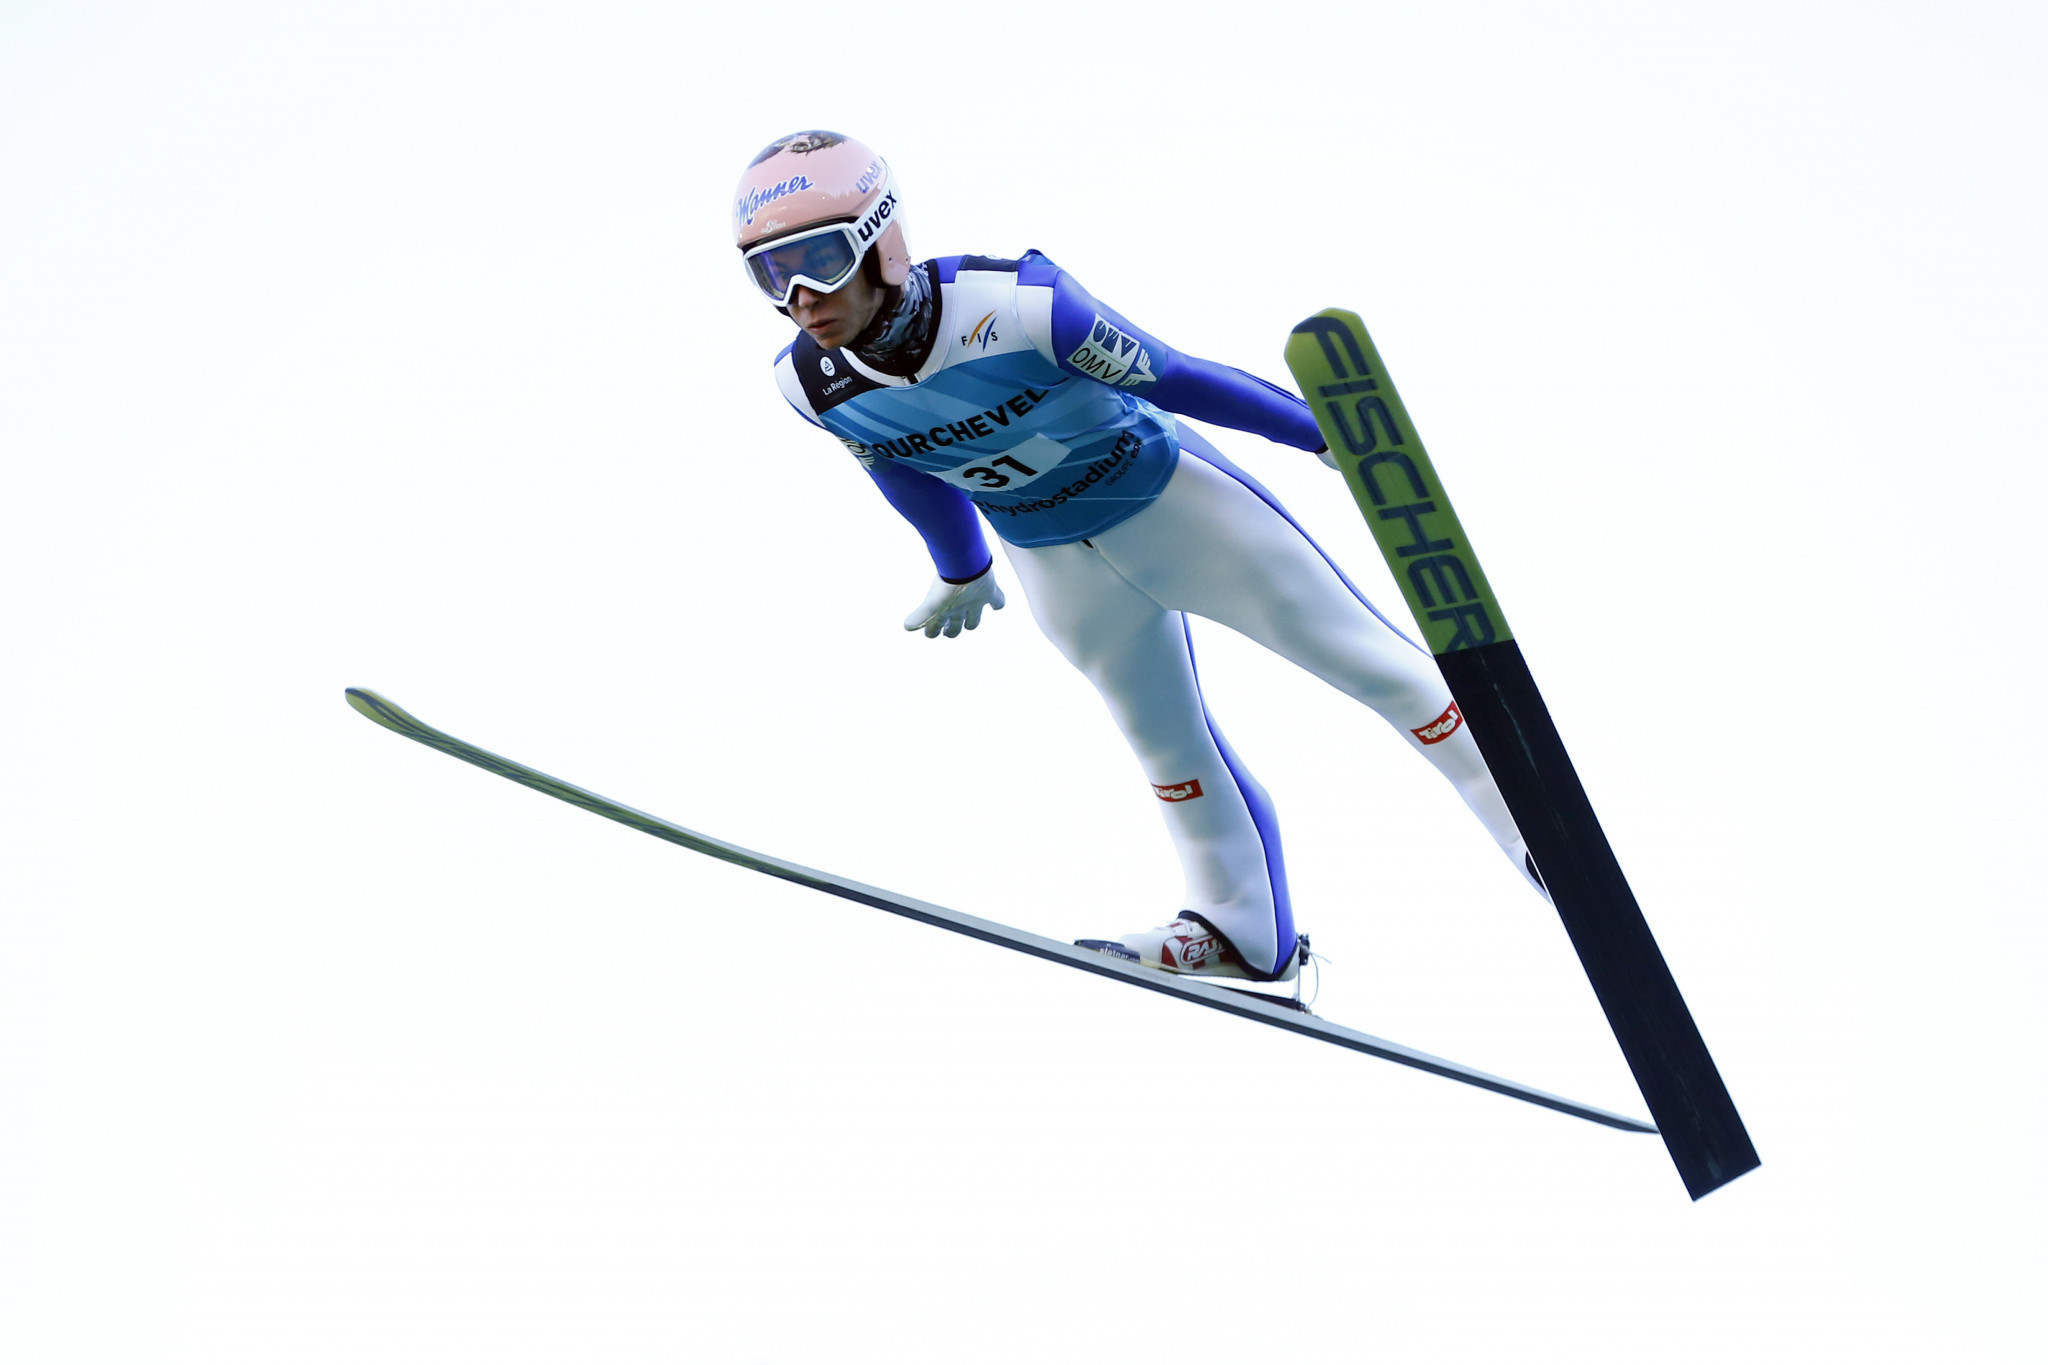 Defending champion Kraft tops qualification as FIS Ski Jumping World Cup season begins